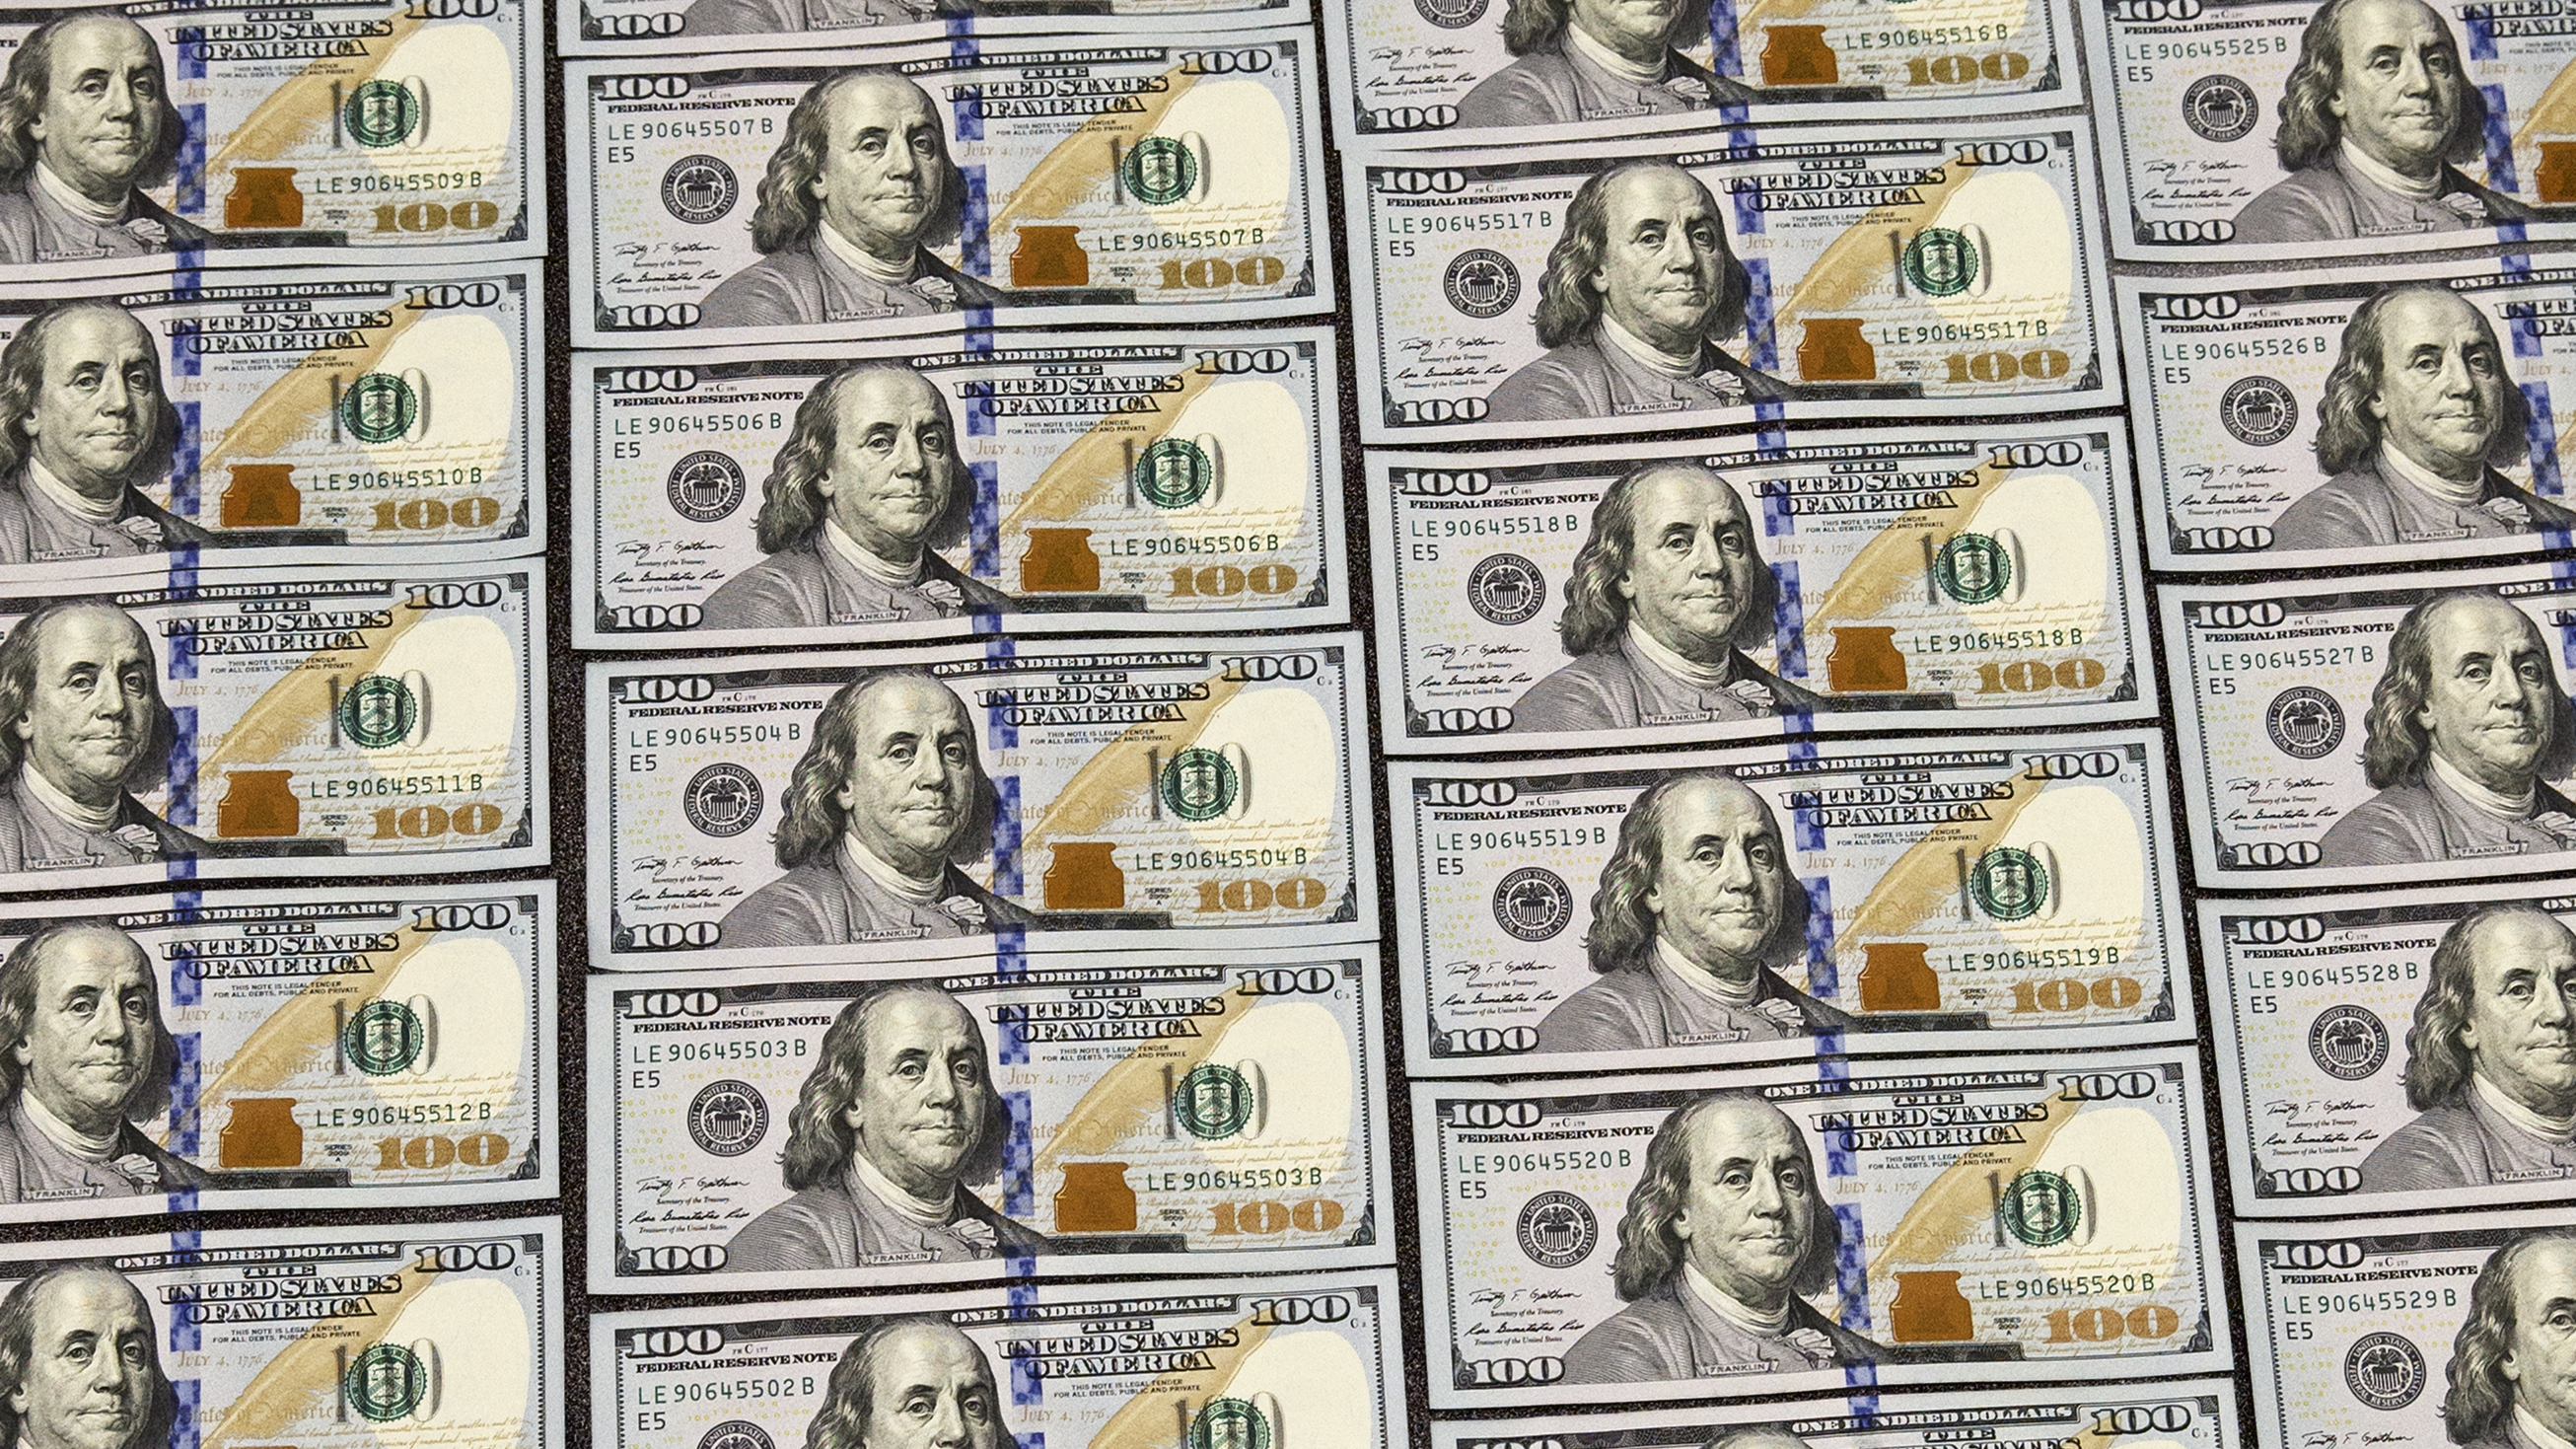 U.S. currency in one hundred dollar denominations are displayed for illustration purposes, in Washington, Monday, March 31, 2014. (AP Photo/J. Scott Applewhite)